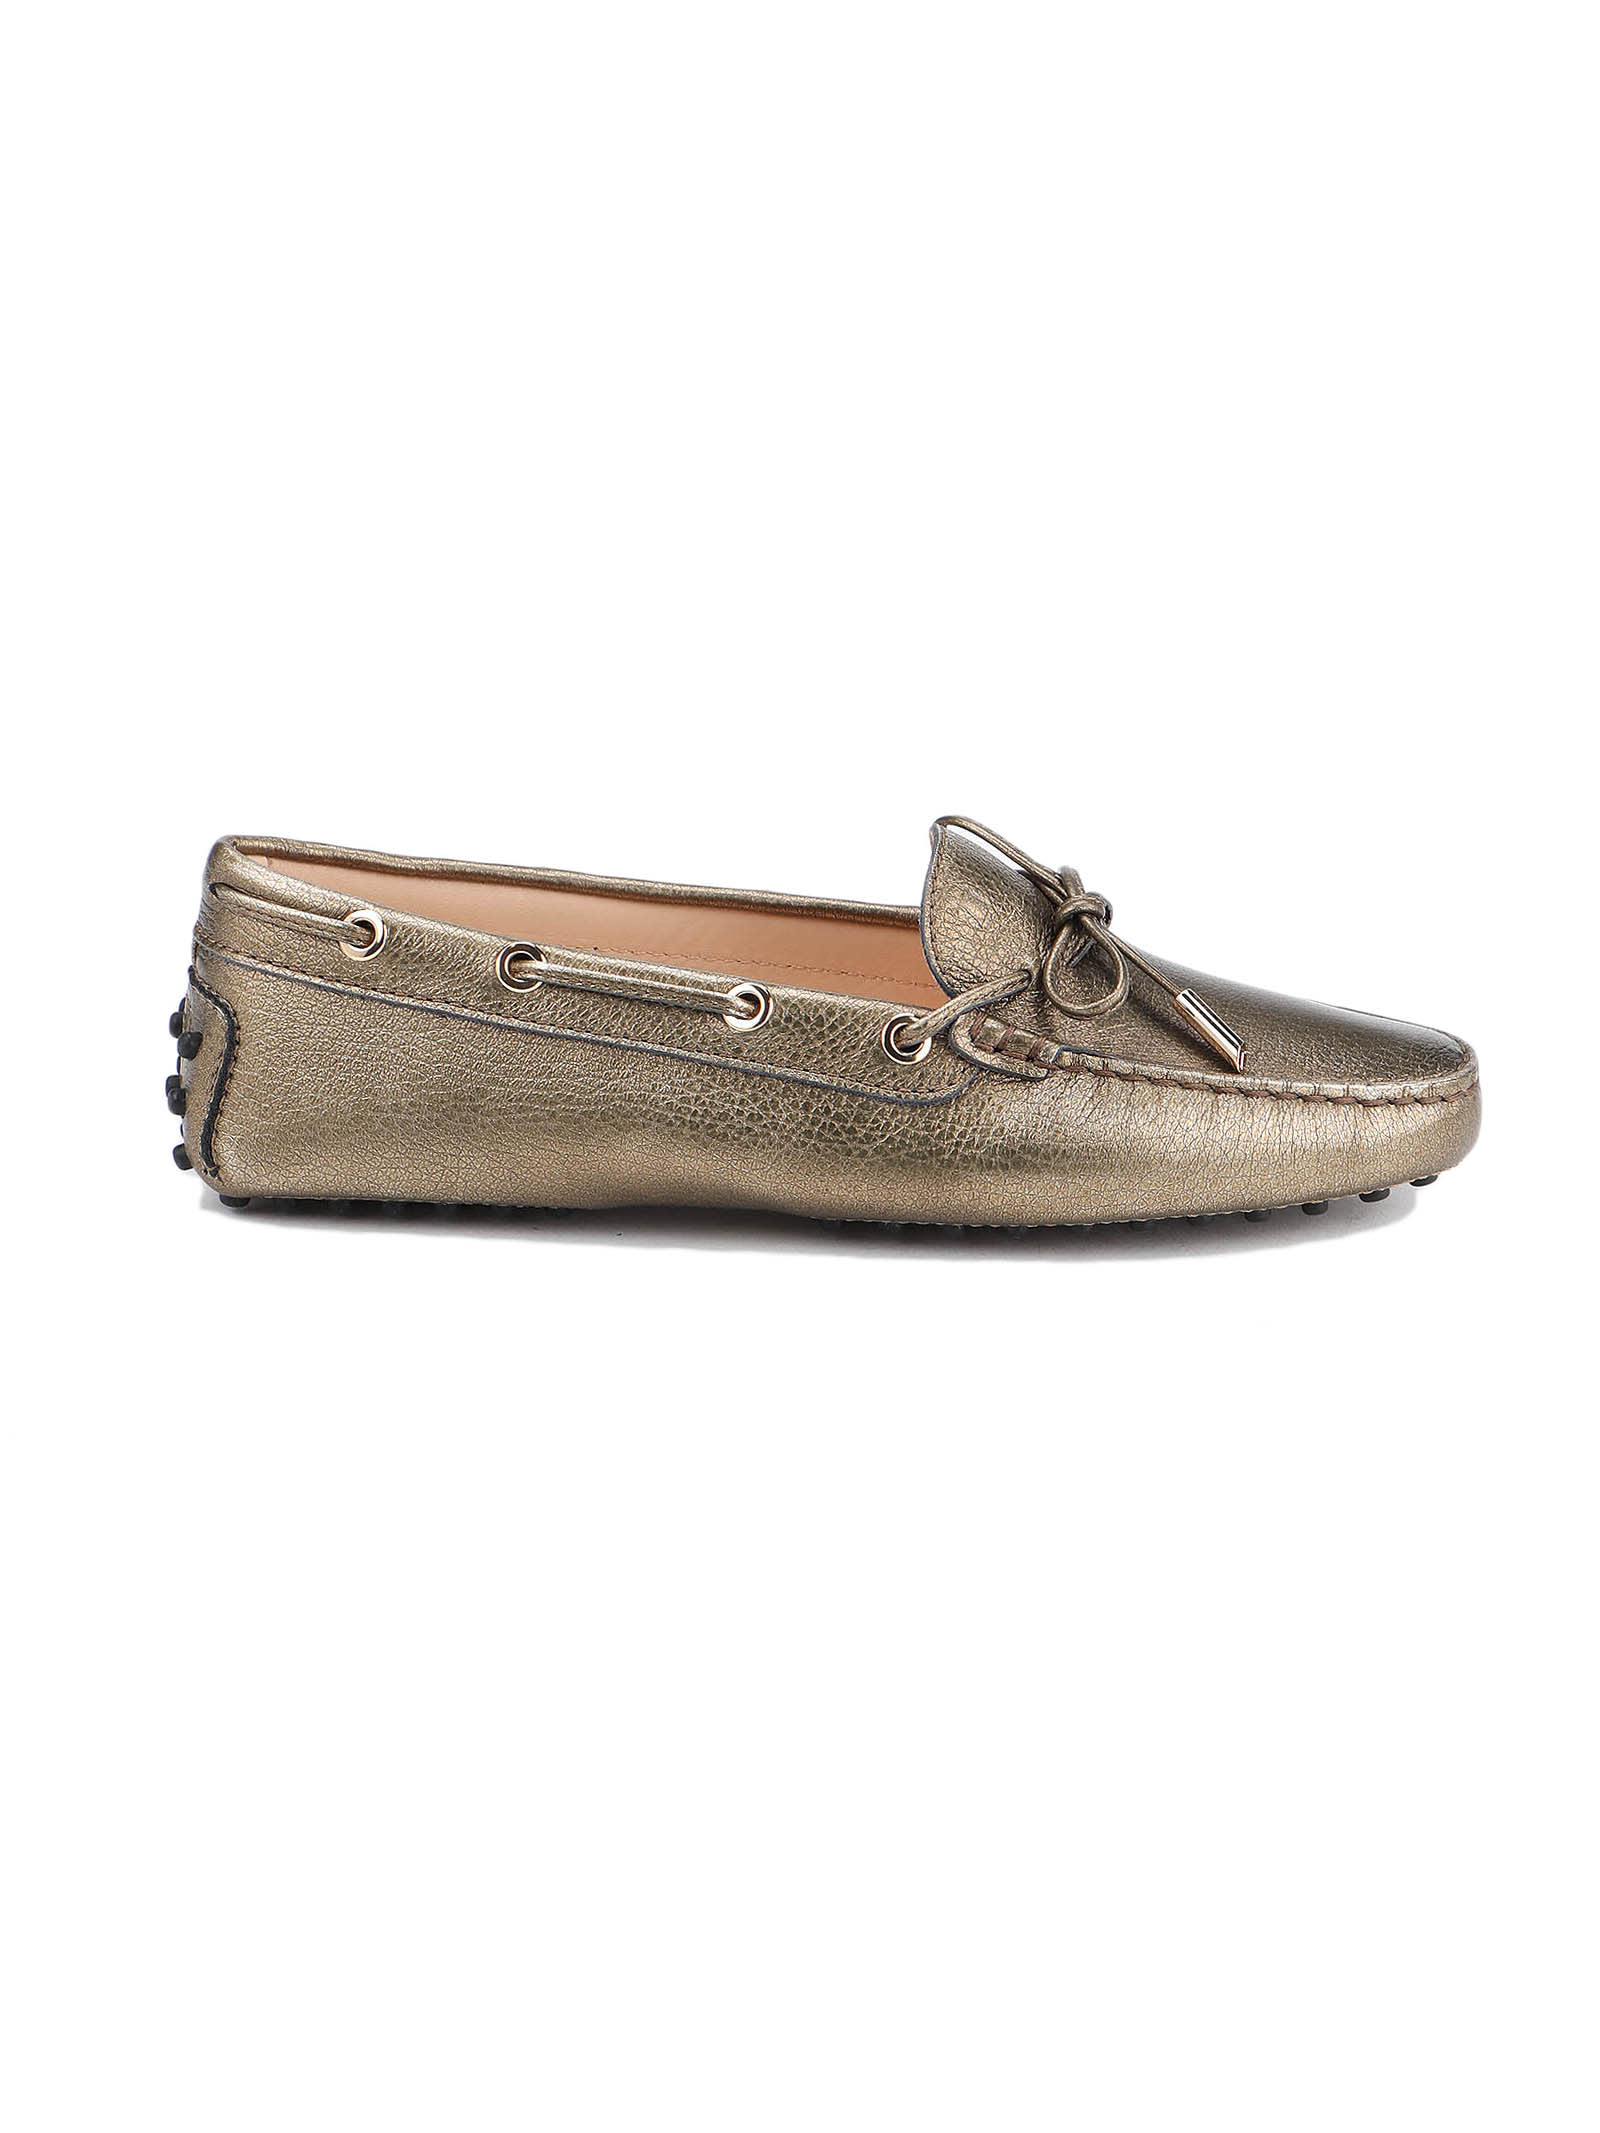 Tods Gommino Driving Loafer